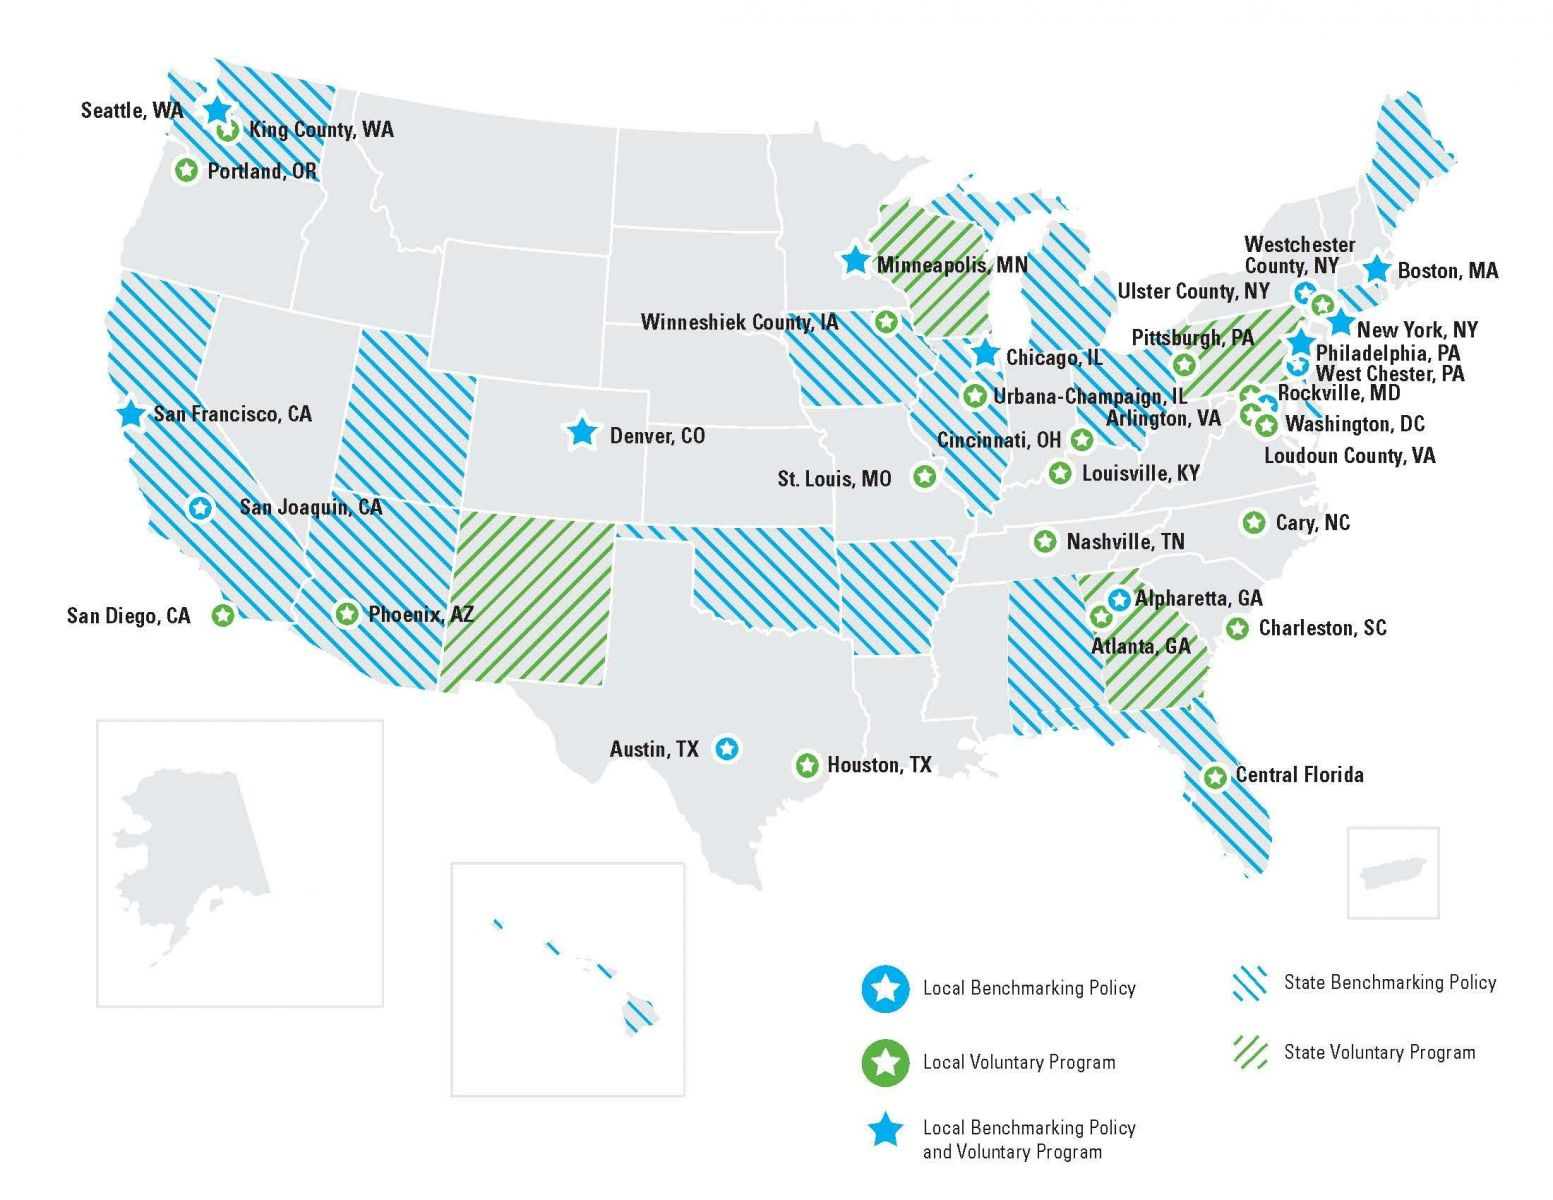 Map of programs and policies using ENERGY STAR